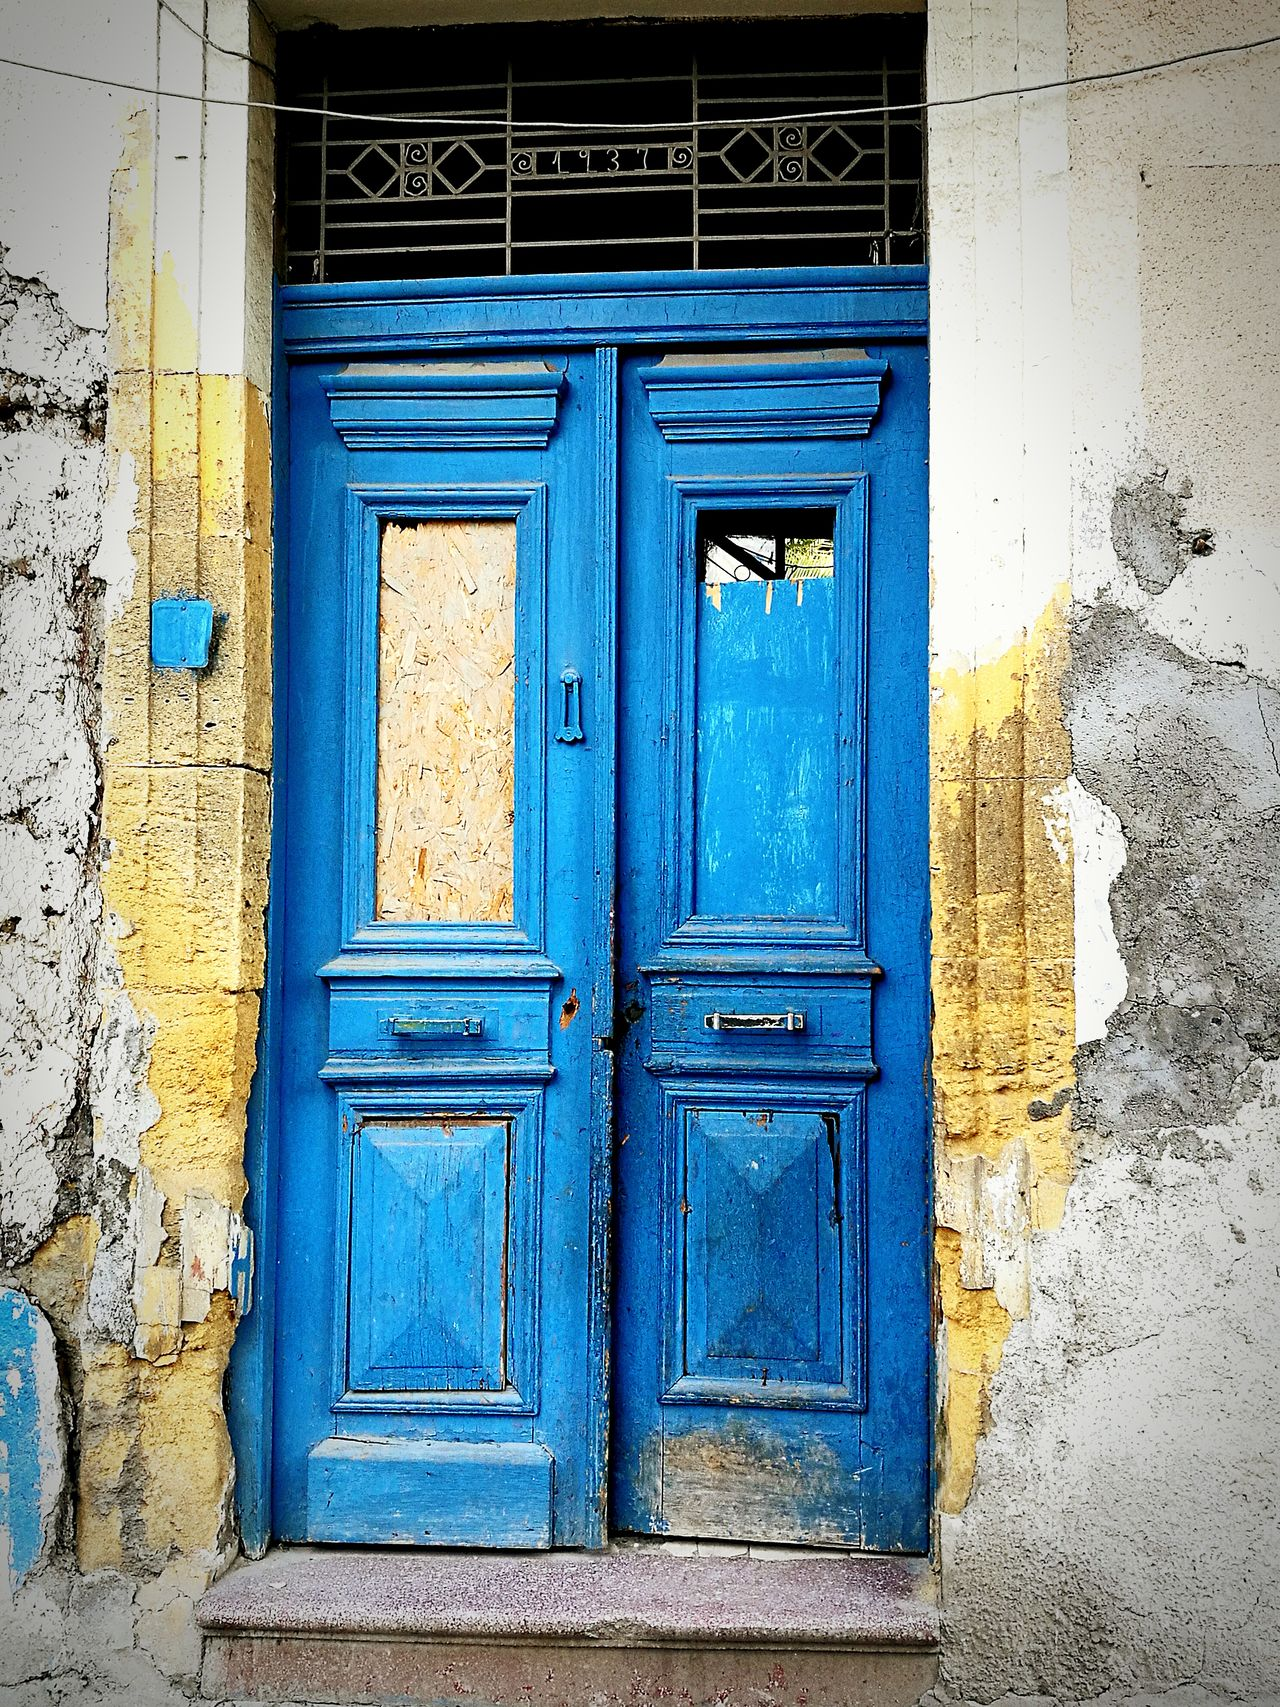 Door Blue Closed Built Structure Outdoors Architecture Day Building Exterior No People House Entrance Lefkoşa Nicosia Turkey Architecture